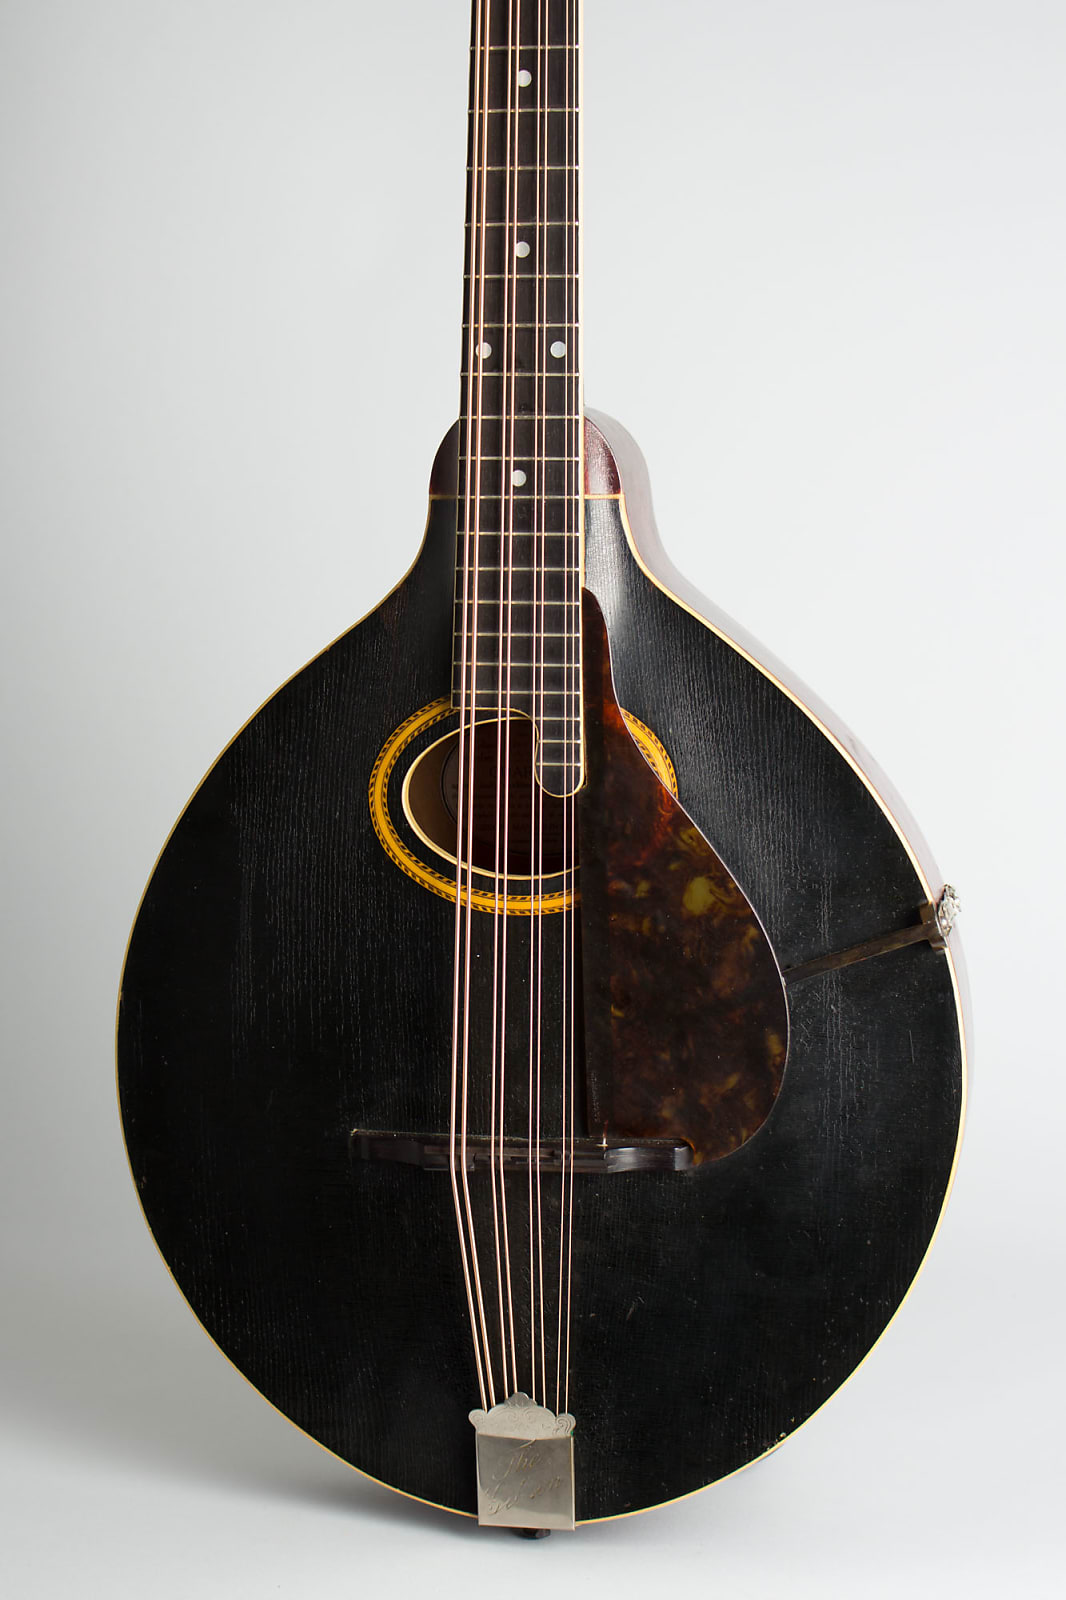 Gibson  K-2 Carved Top Mandocello (1911), ser. #12491, black hard shell case.